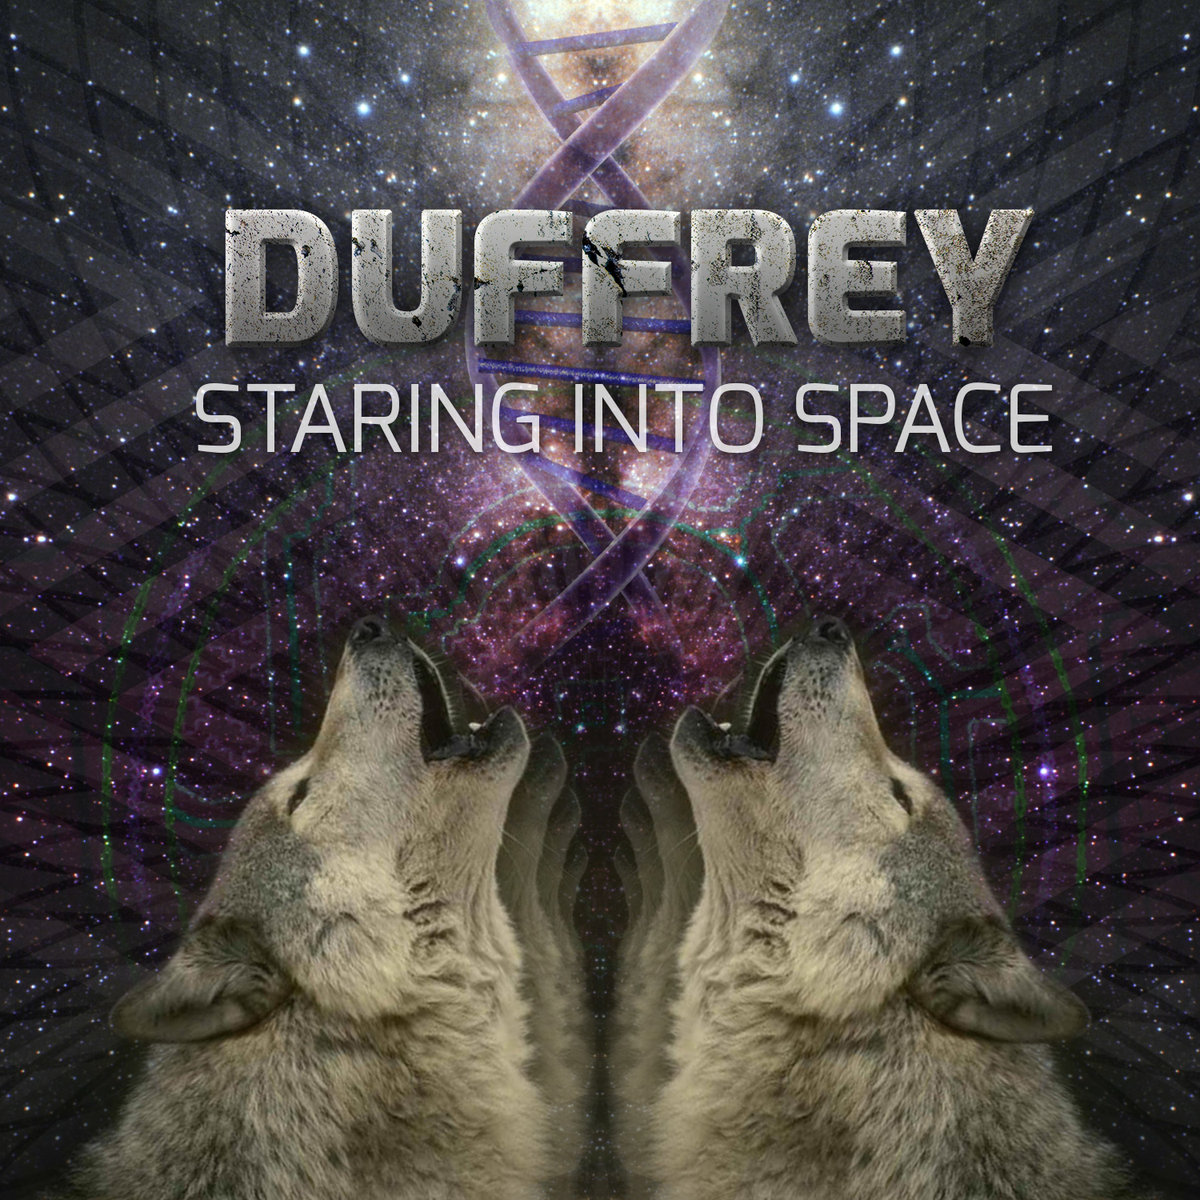 Duffrey - Way of the Learned Cat @ 'Staring Into Space' album (bass, breaks)